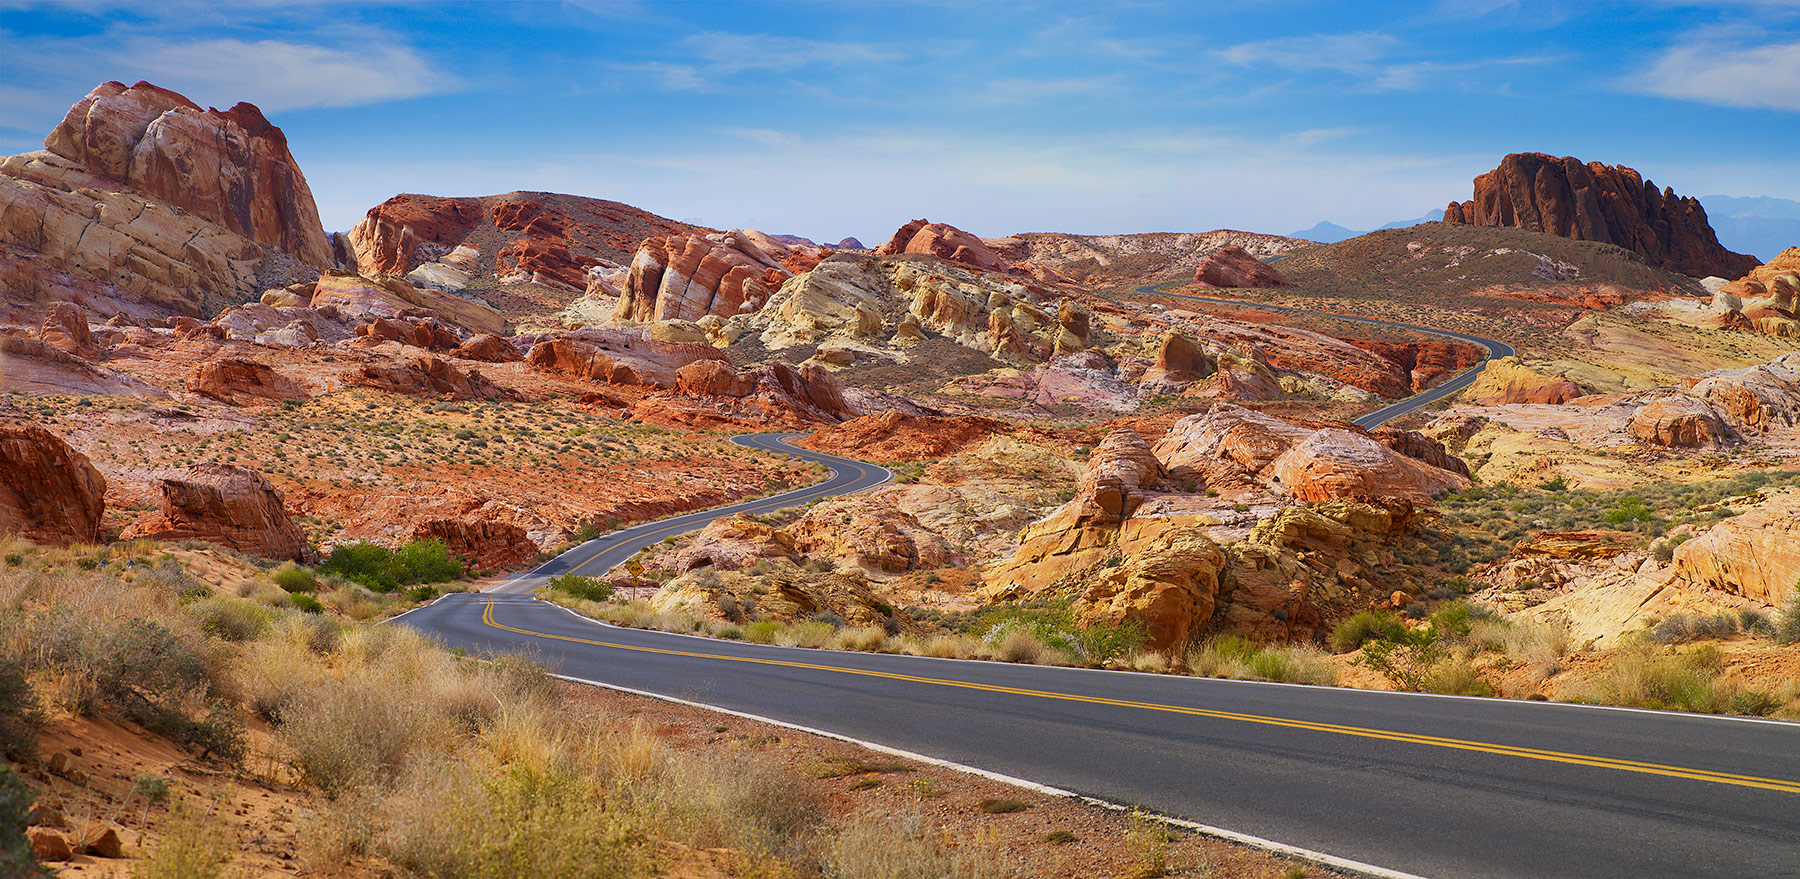 Winding desert road in California | Dovis Bird Agency Reps